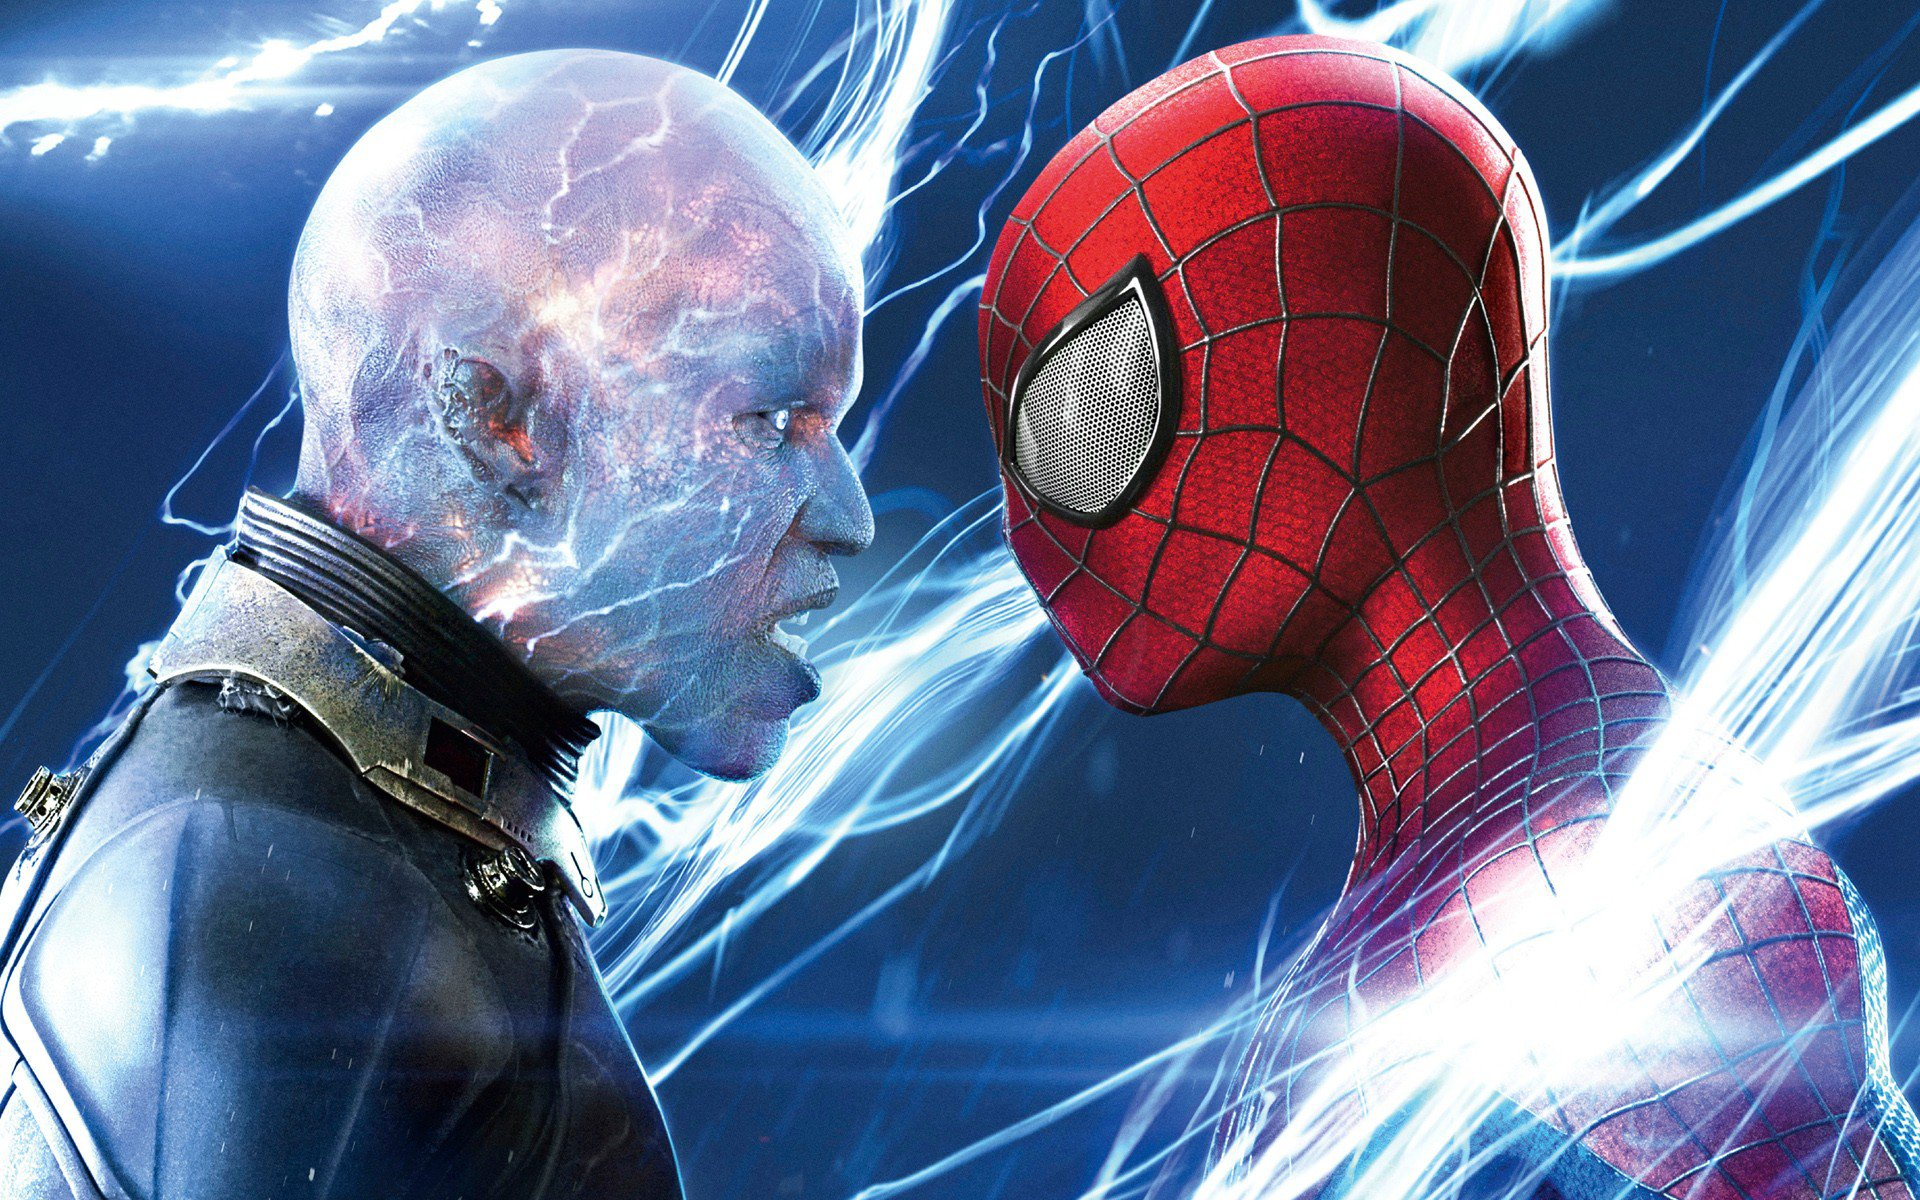 Spiderman hd hd movies 4k wallpapers images - Images spiderman ...